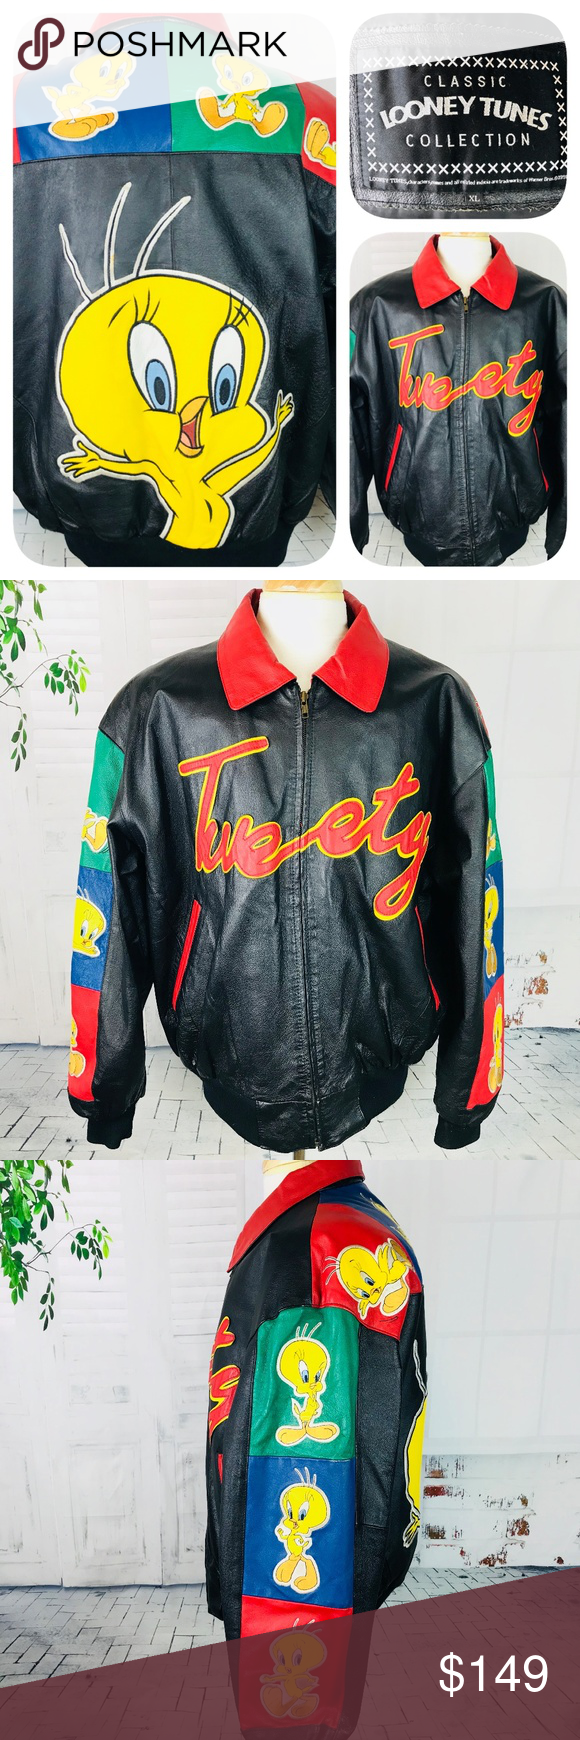 Looney Tunes Collection Tweety Leather Jacket Xl Vintage Leather Jacket Jackets Leather Jacket [ 1740 x 580 Pixel ]